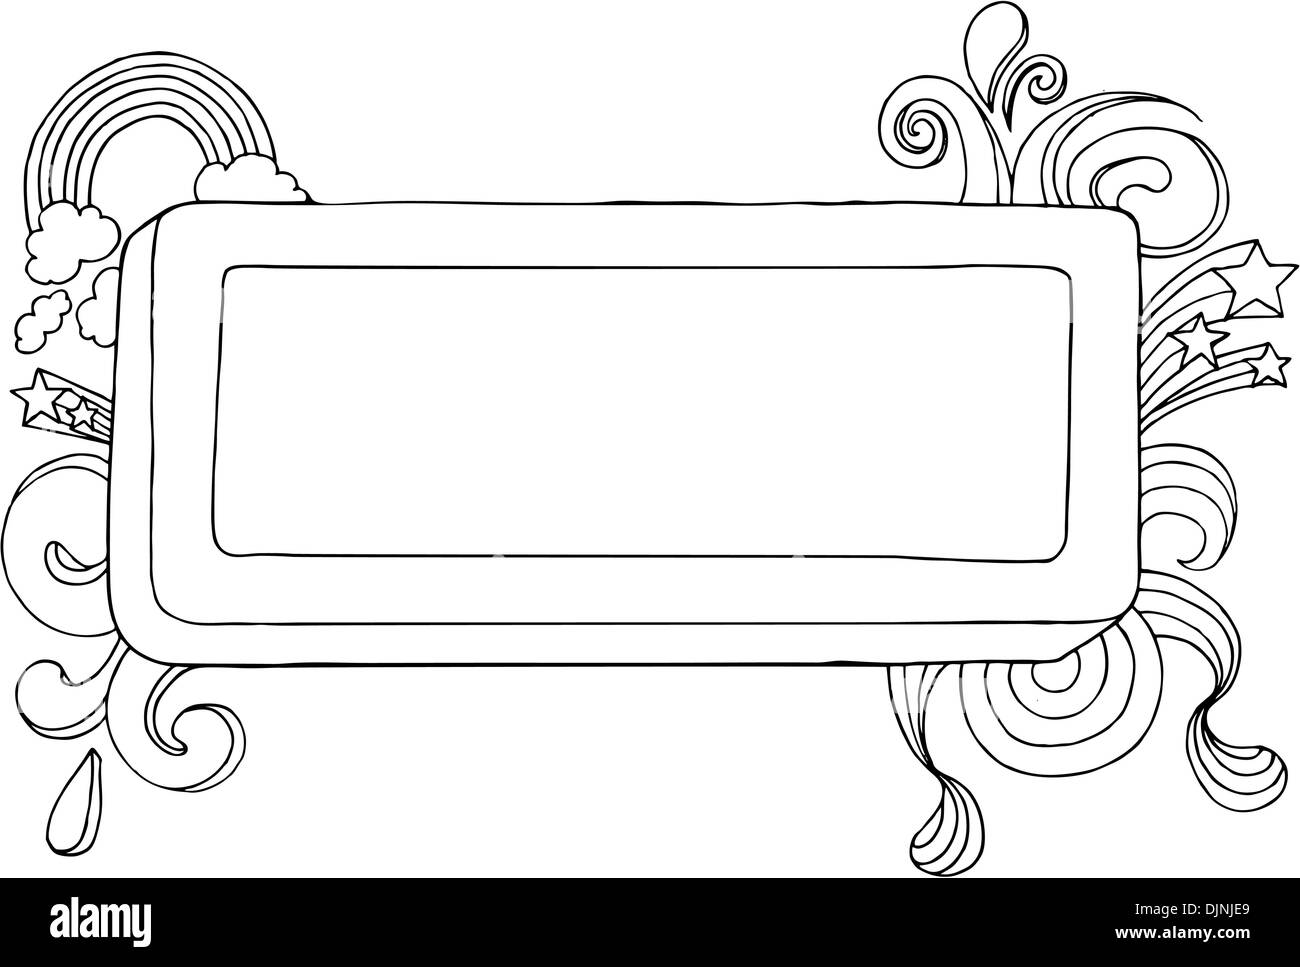 hand drawn text box blank stock photos hand drawn text box blank